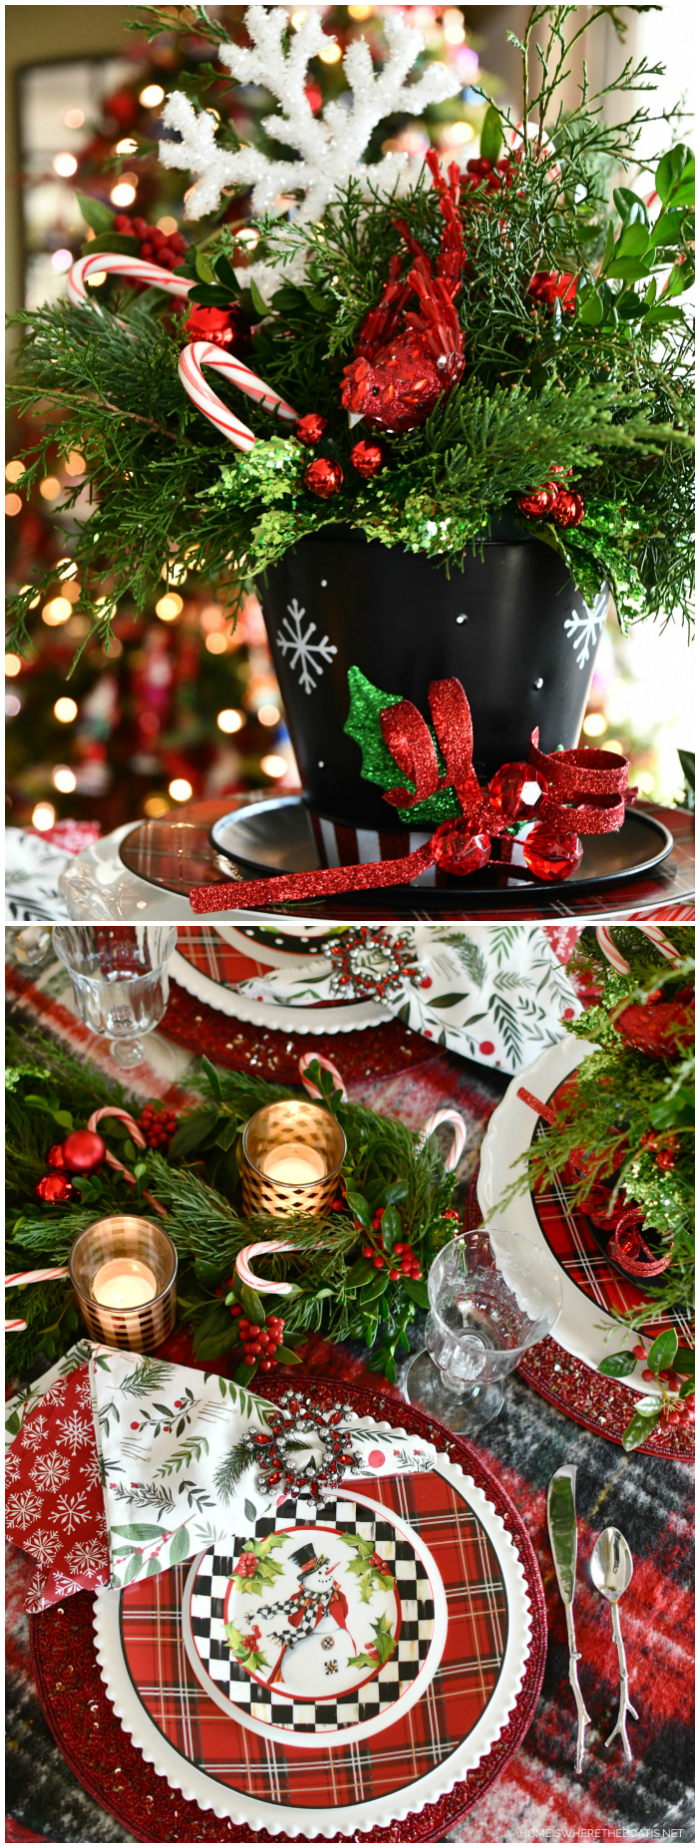 Top Hat Snowman Centerpiece and Table | ©homeiswheretheboatis.net #christmas #snowman #tablescapes